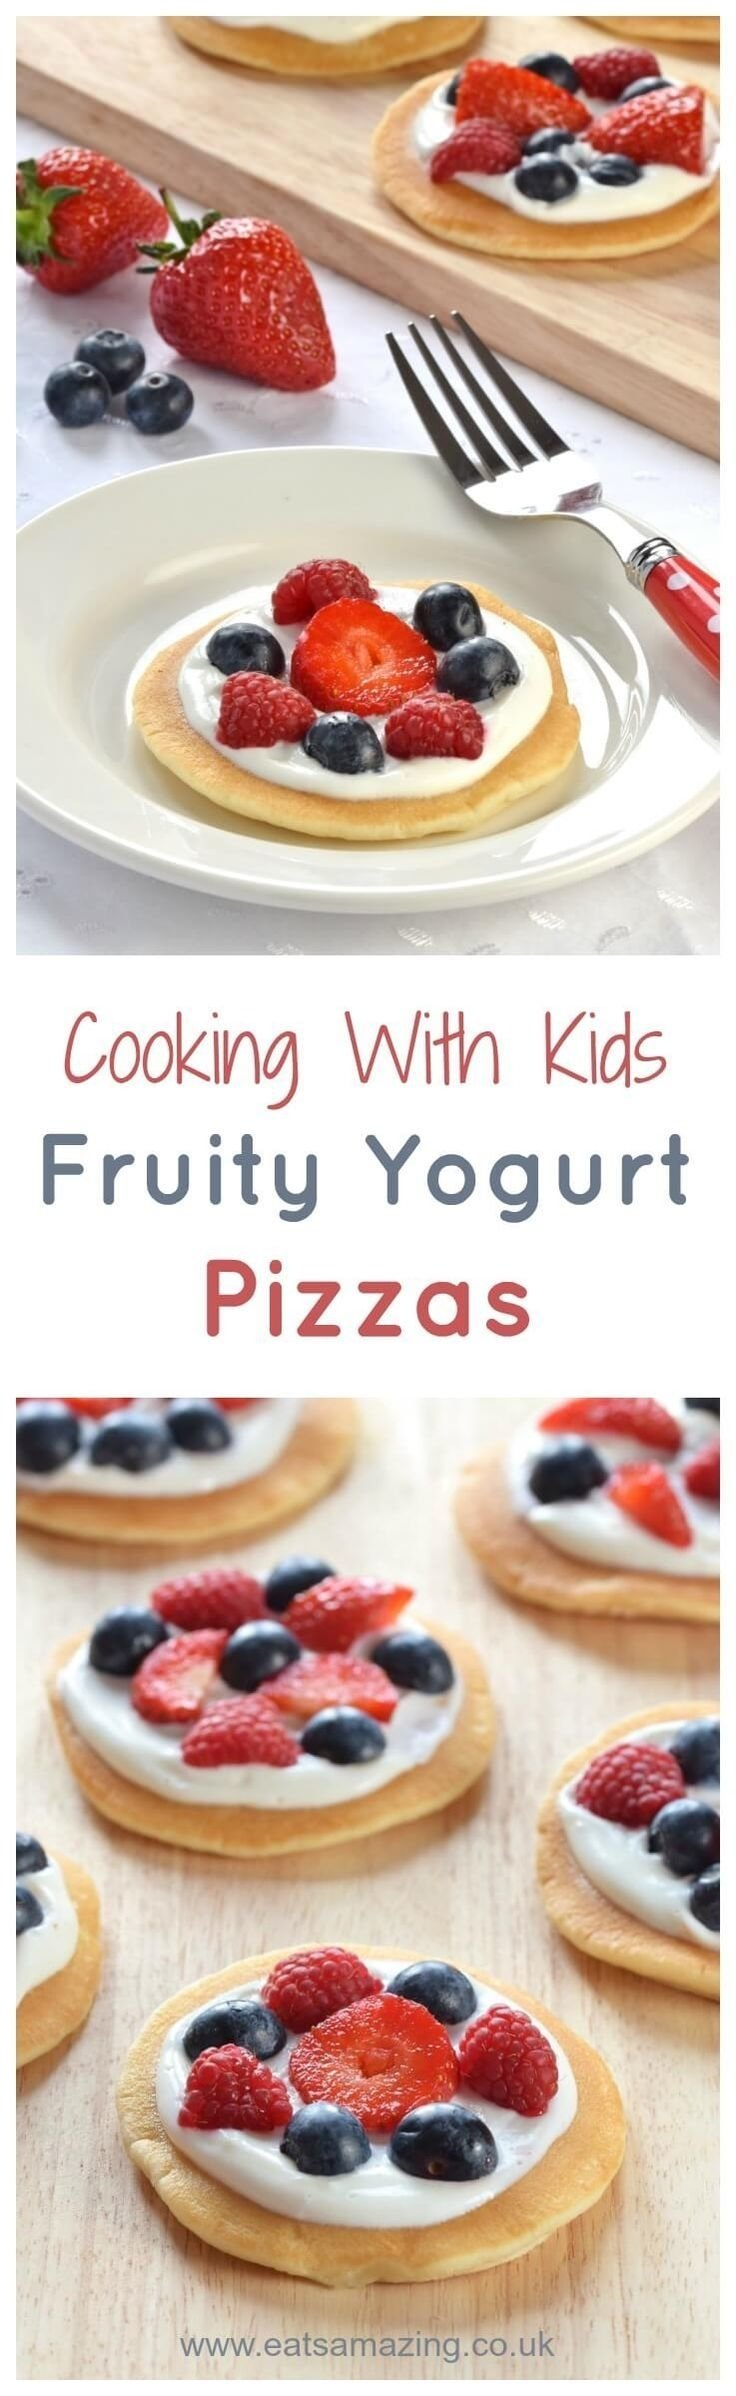 10 Stylish Fun Cooking Ideas For Kids 319 best cool kid food images on pinterest toddler snacks baby 3 2021